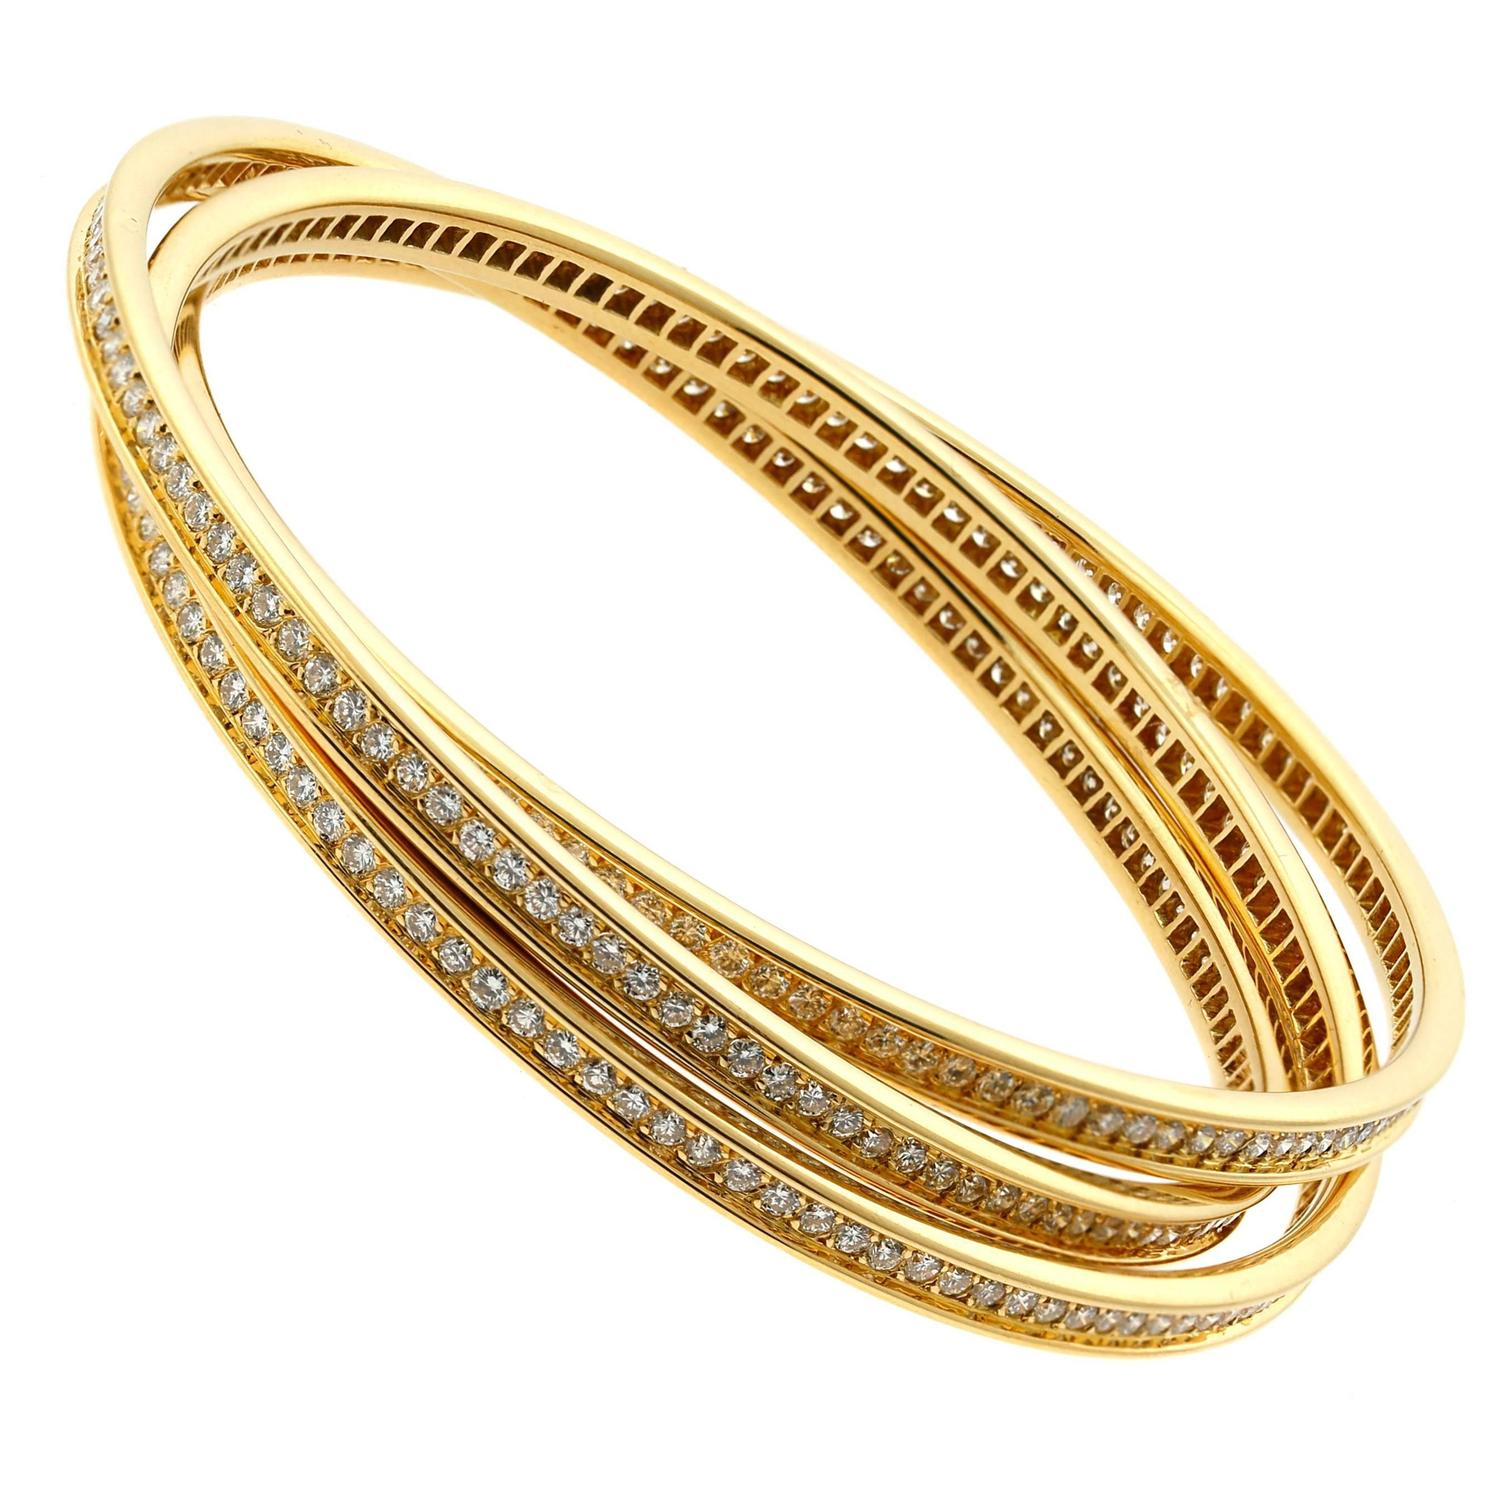 clemina baker gold metallic bangle bracelet bangles hinge women popular rose ted s